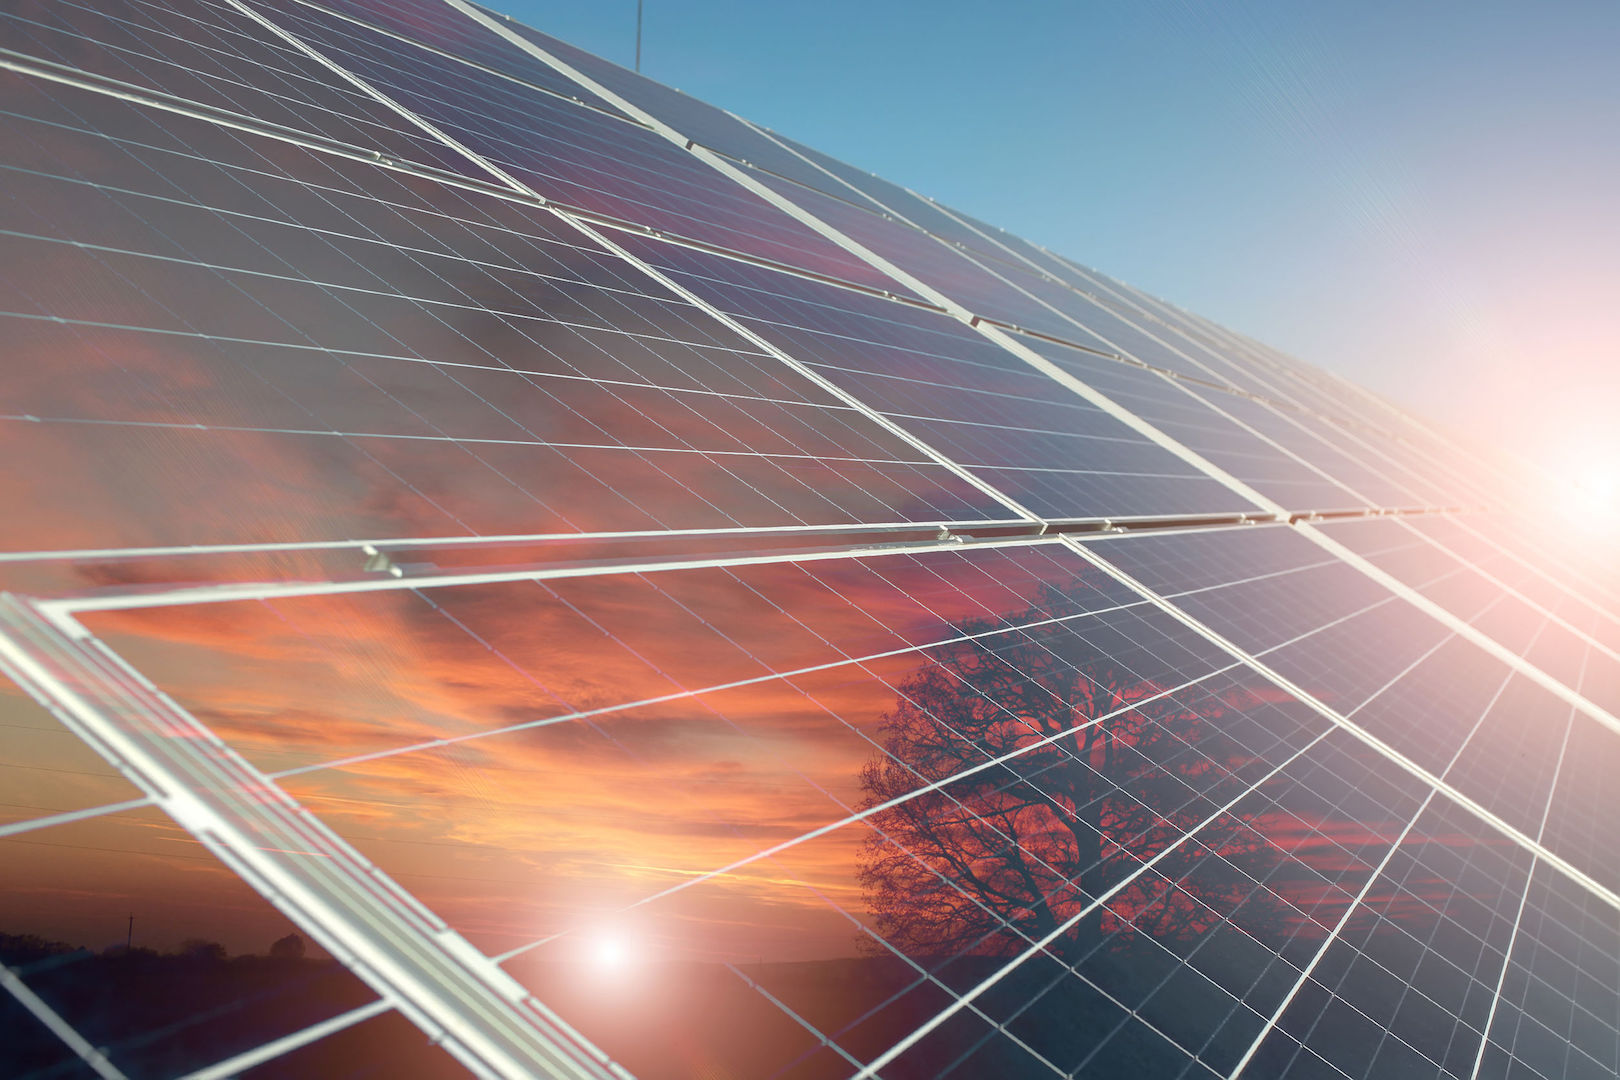 Kellogg's Australia commits to powering NSW operations with solar power